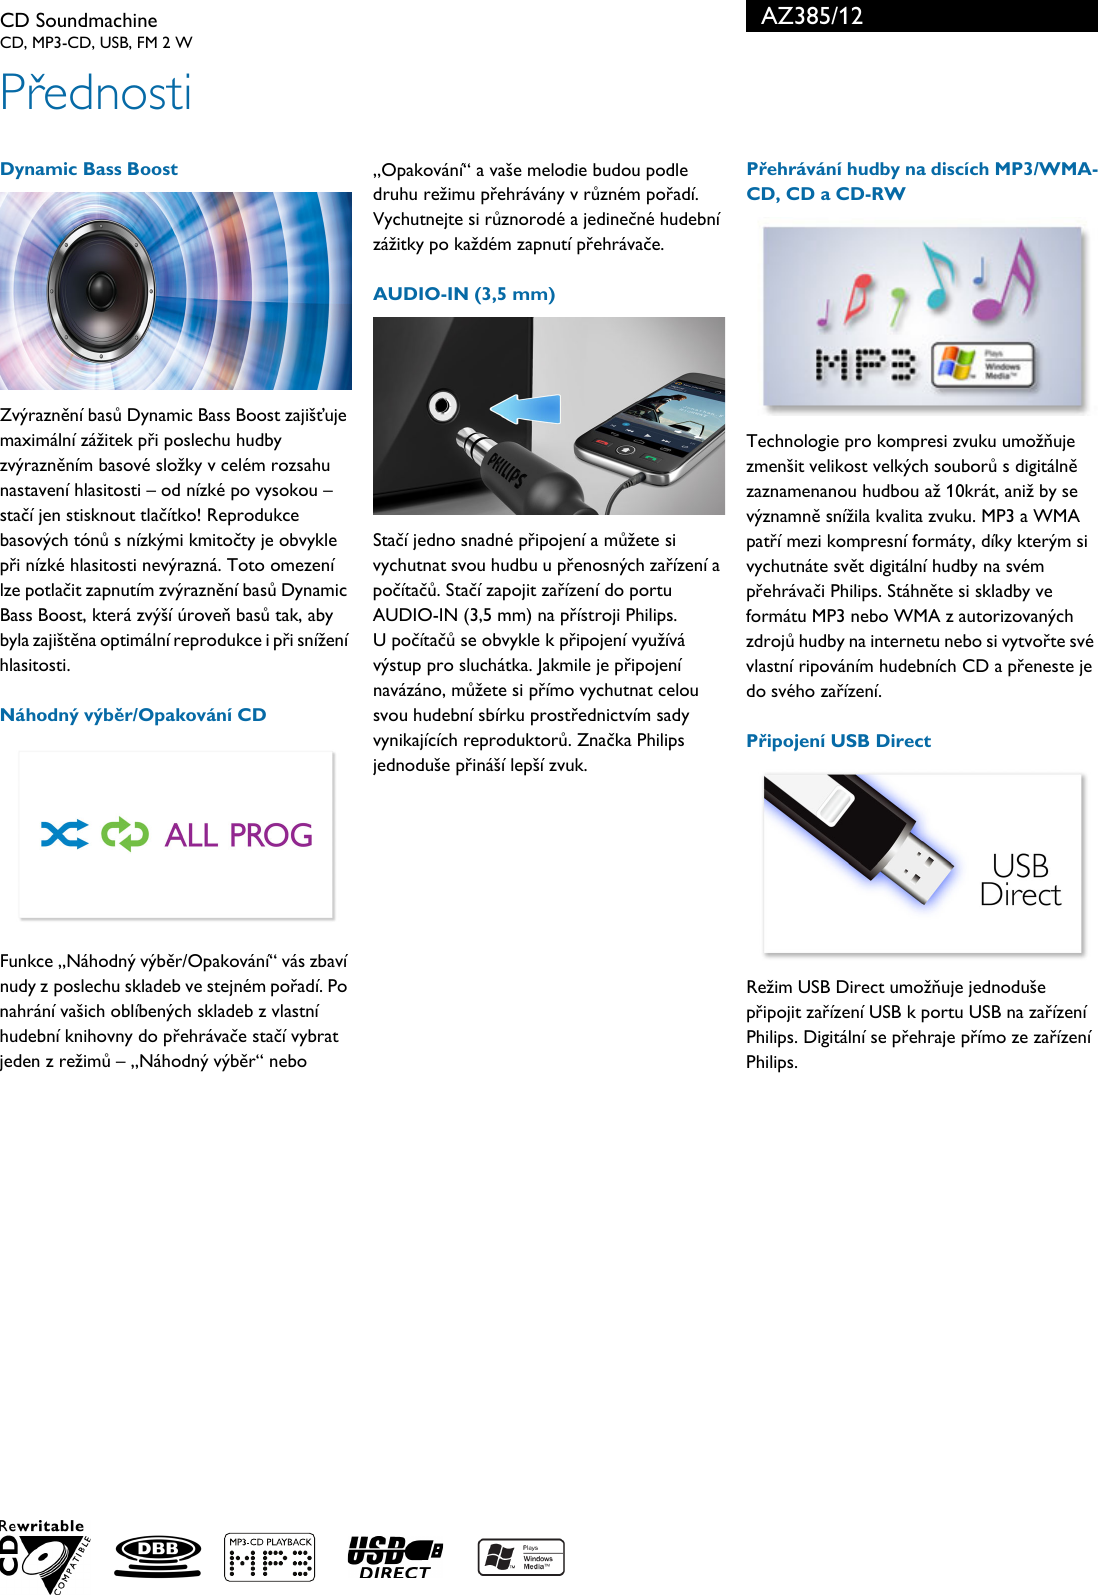 Philips AZ385/12 Leaflet AZ385_12 Released Czech Republic